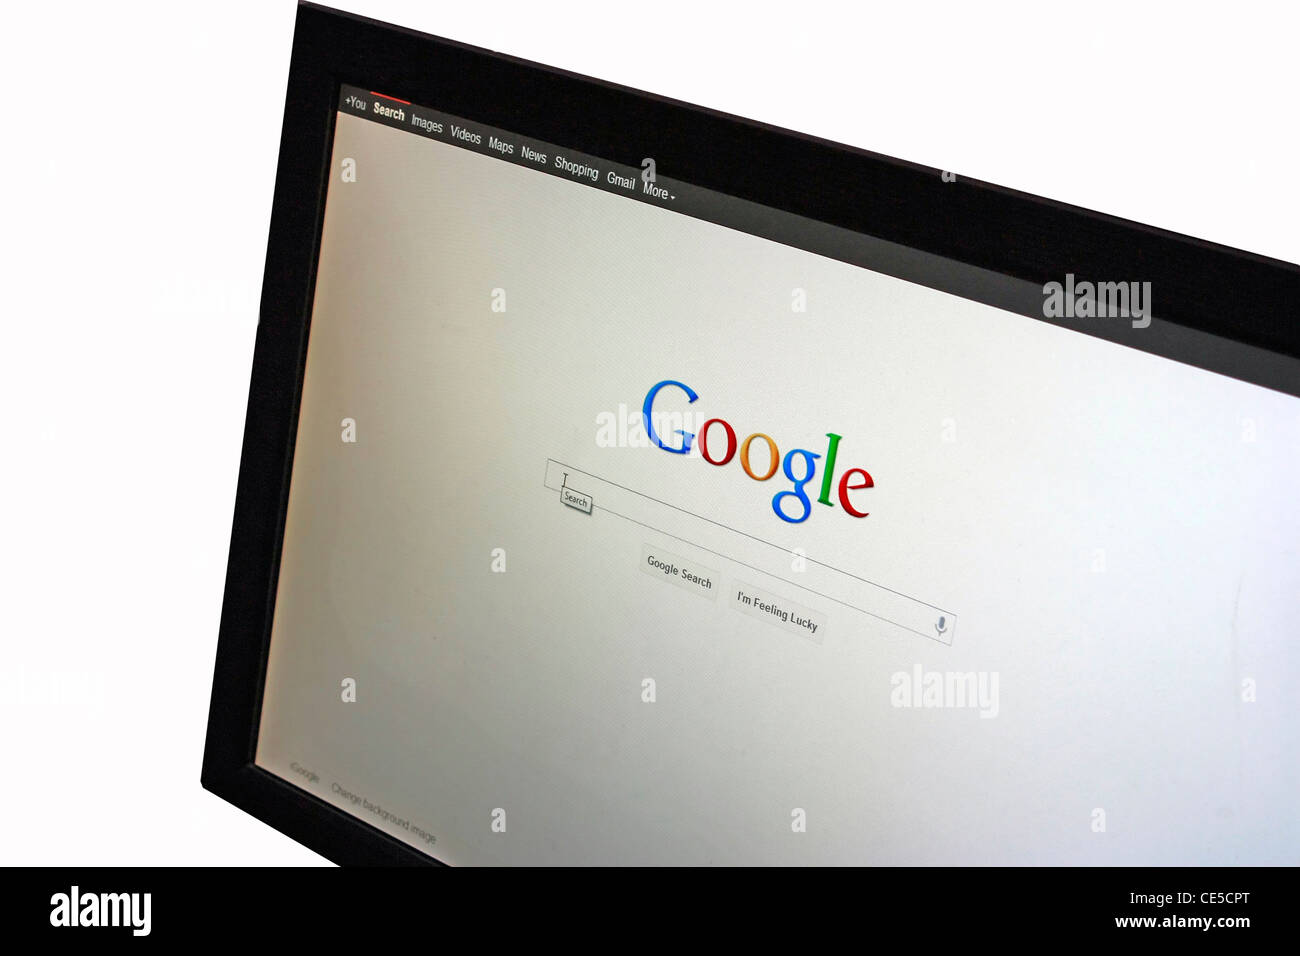 A computer with the screen capture of the popular seach website Google taken in a browser - Stock Image